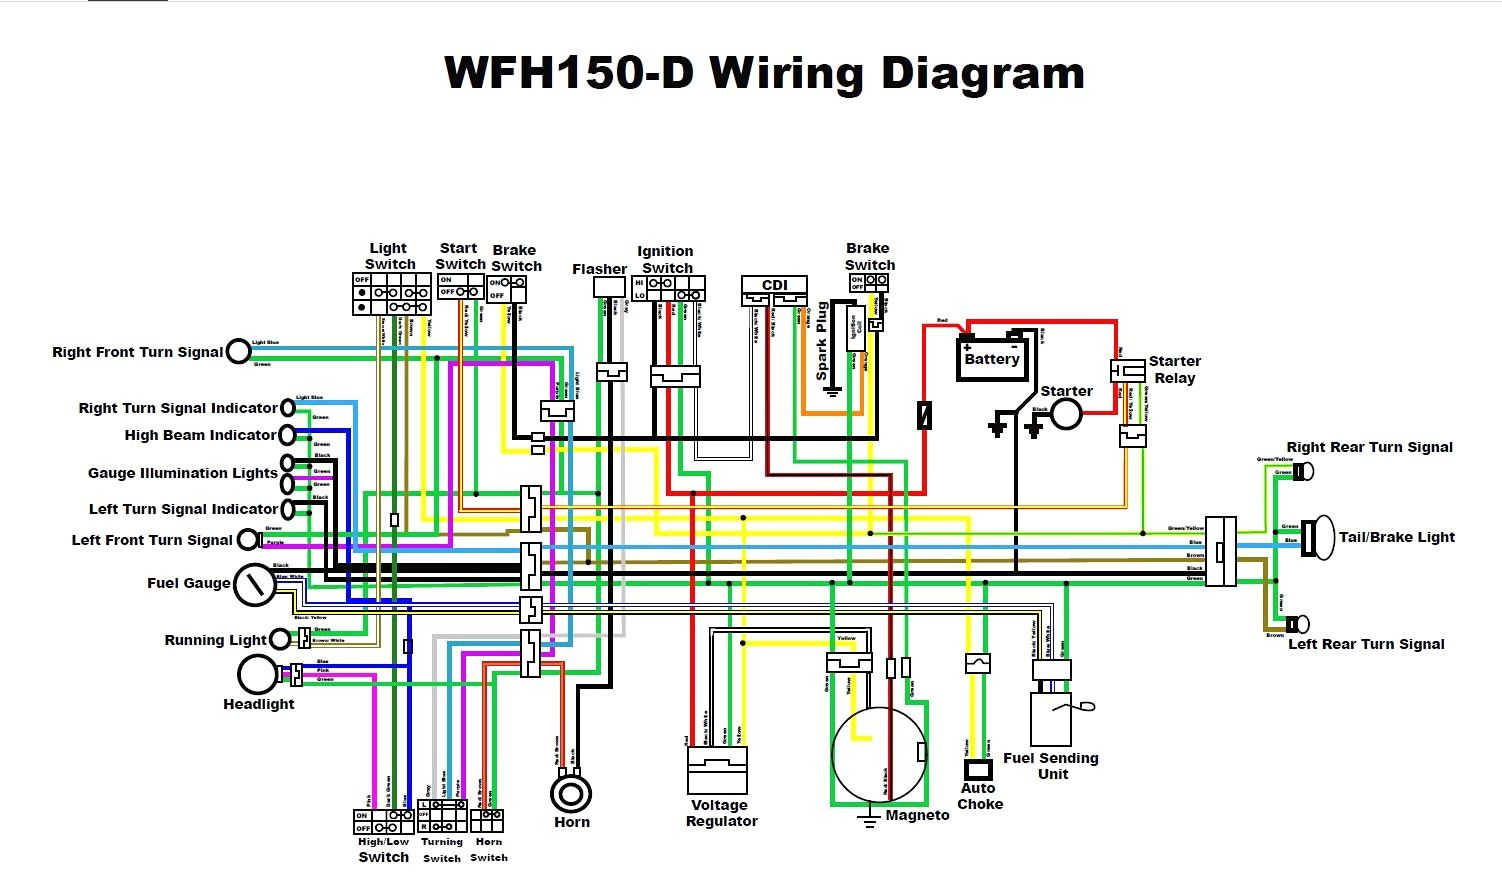 Gy6 150 Wiring Diagram Diagrams Schematics And 150Cc Hbphelp Me New |  Electrical diagram, 150cc go kart, 150cc scooter | Gy6 Buggy Wiring Diagram |  | Pinterest